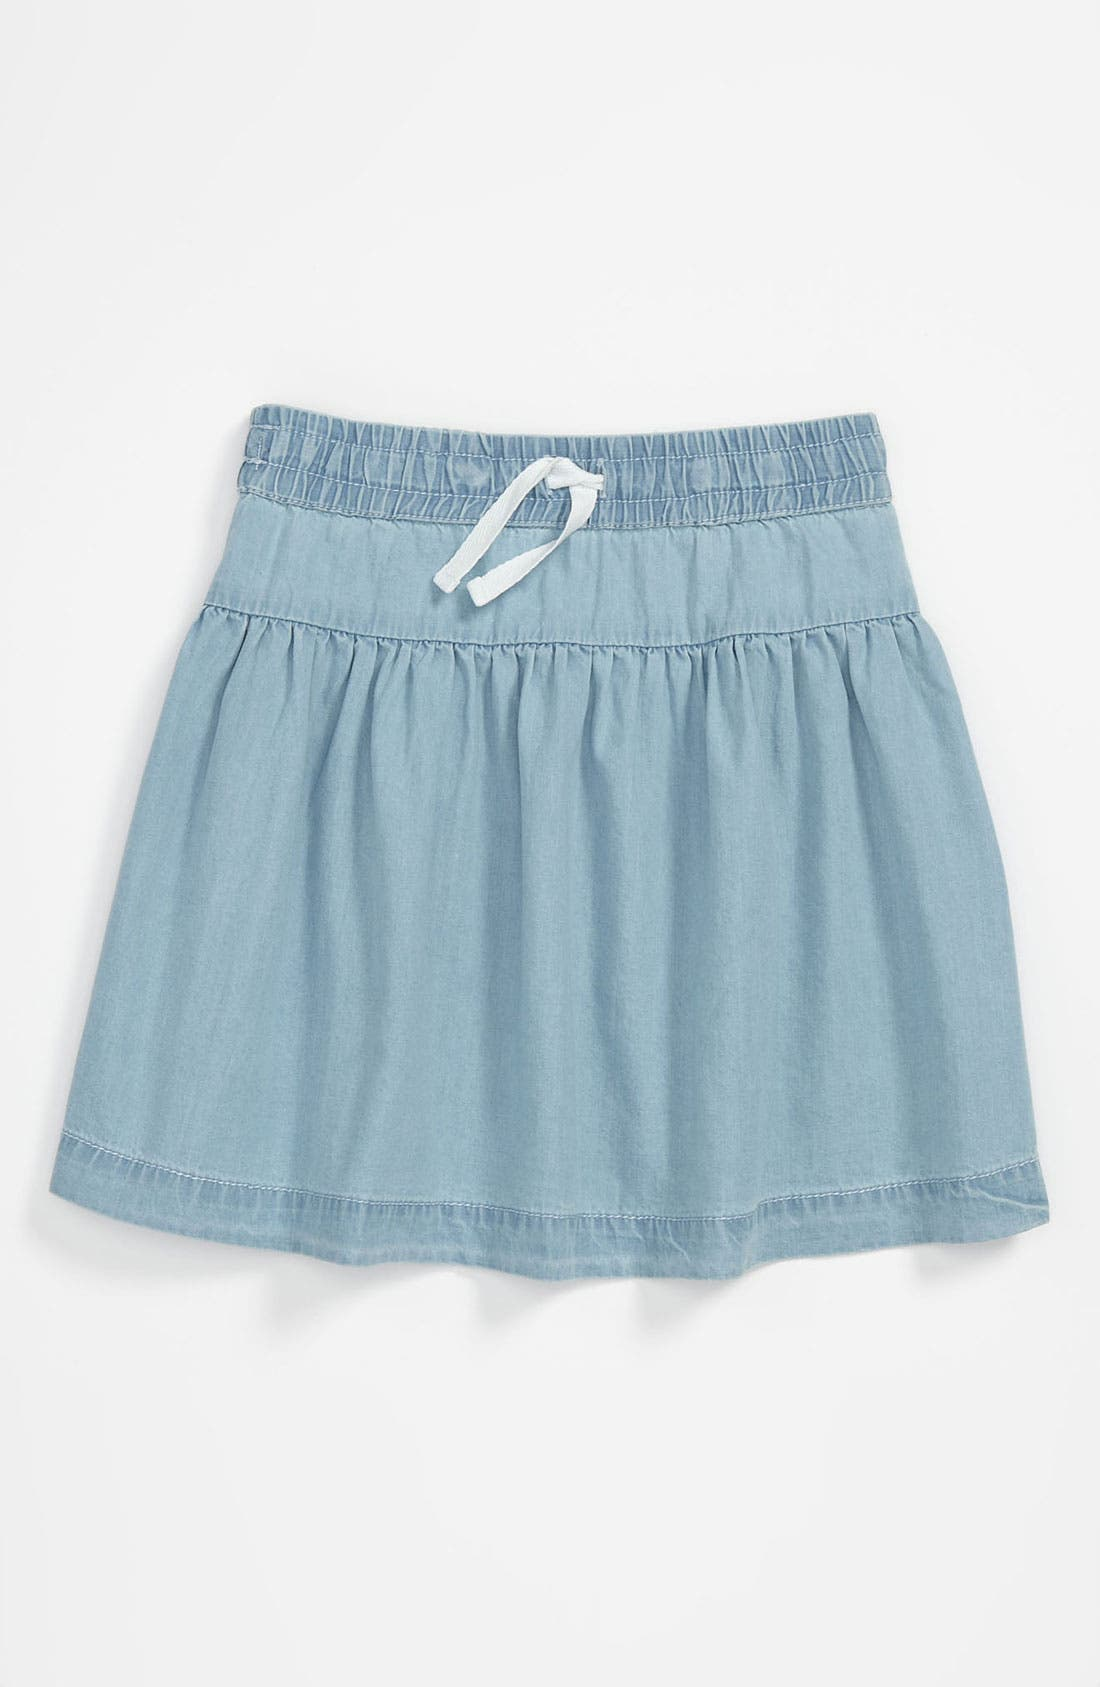 Alternate Image 1 Selected - Tucker + Tate 'Pippa' Chambray Skirt (Big Girls)